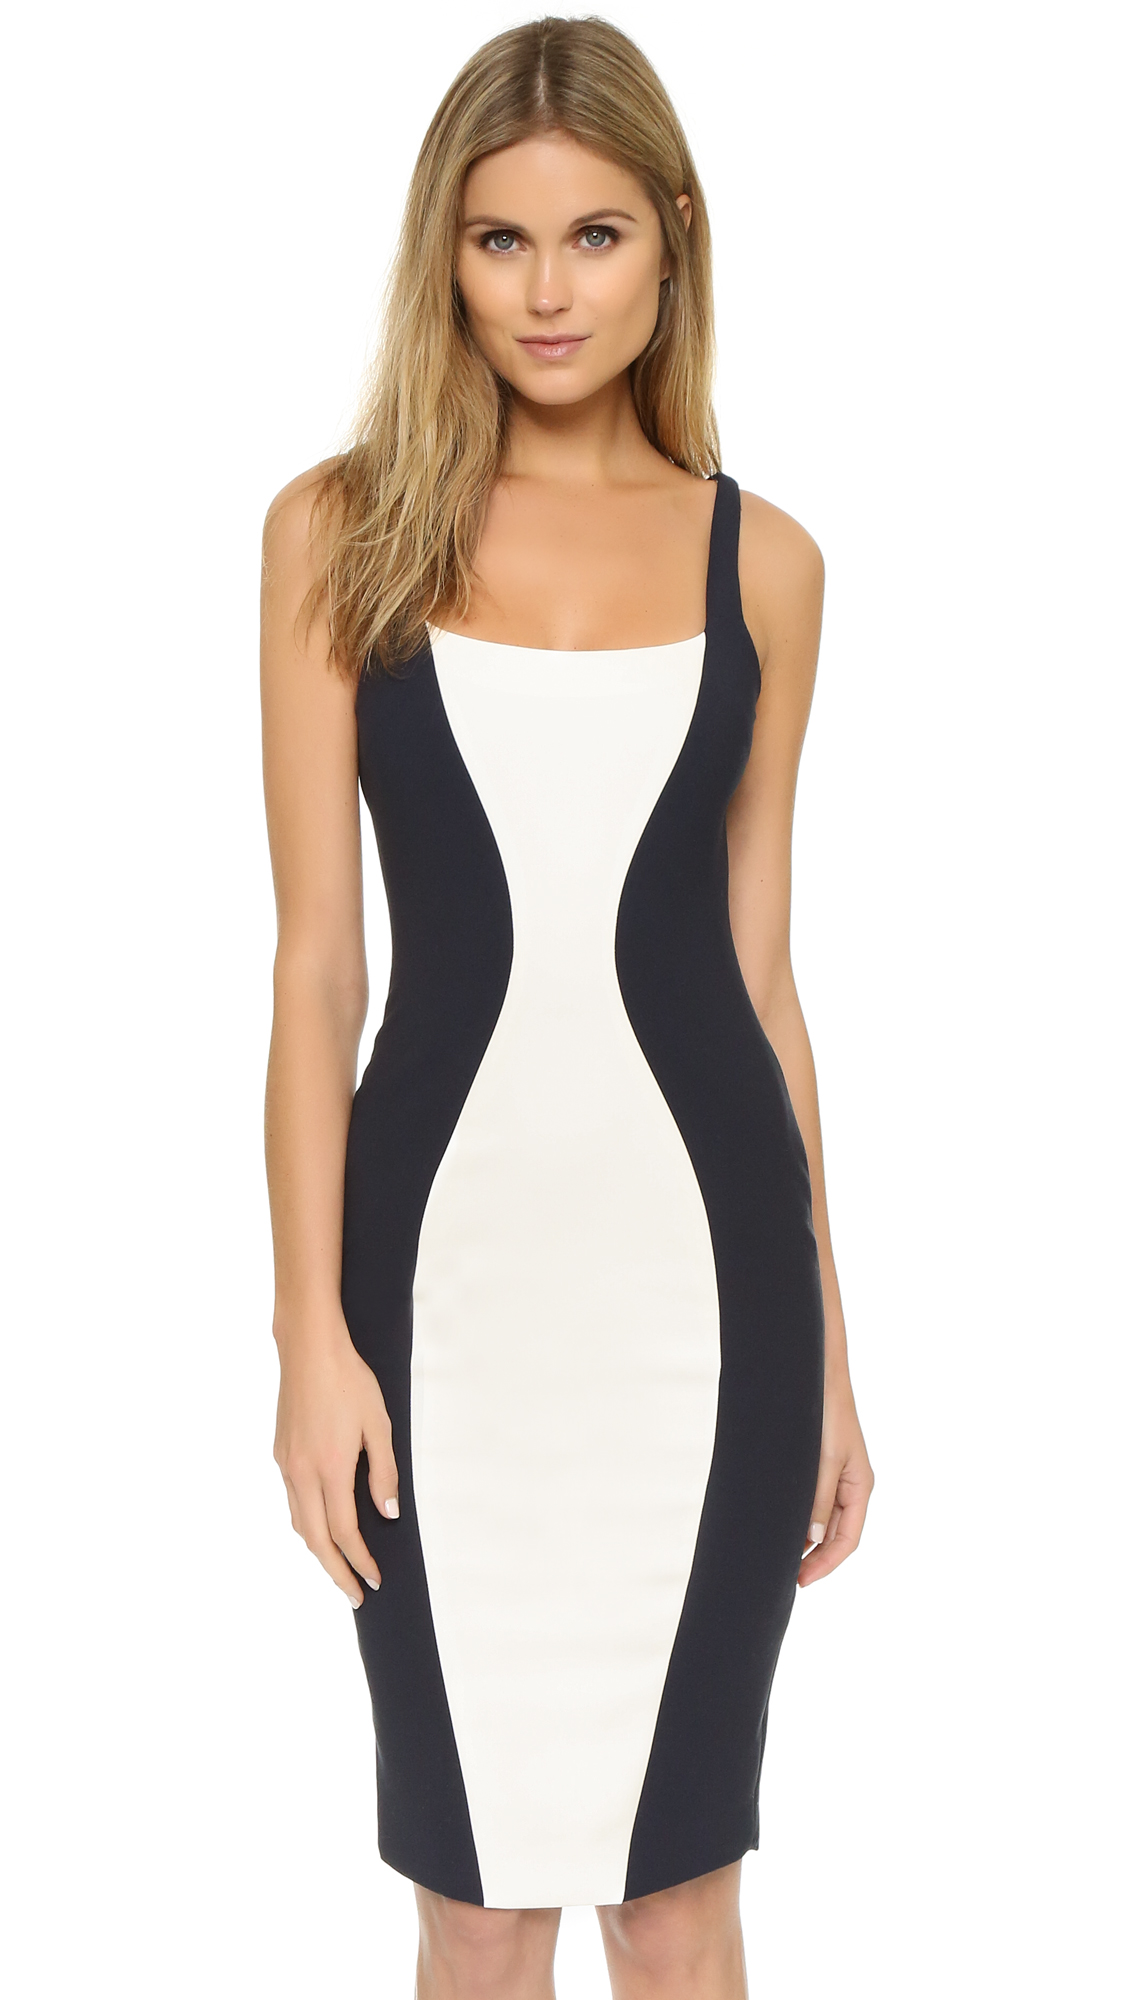 Elizabeth and James Ahana Dress In Ivory/French Navy